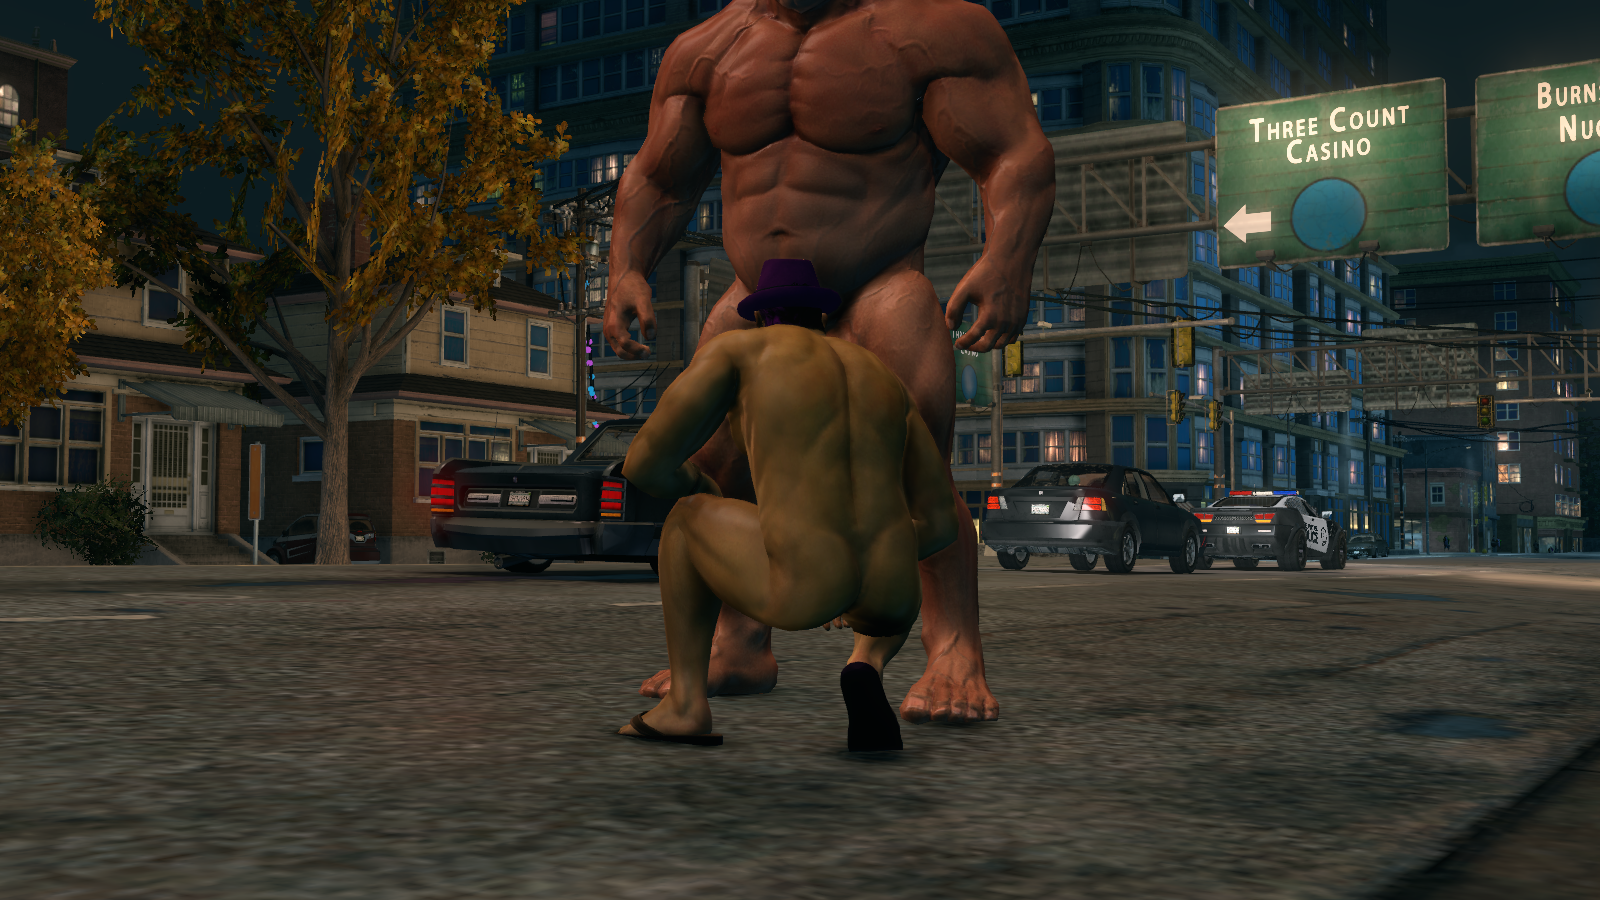 Saints row 3 nude sex xxx photo